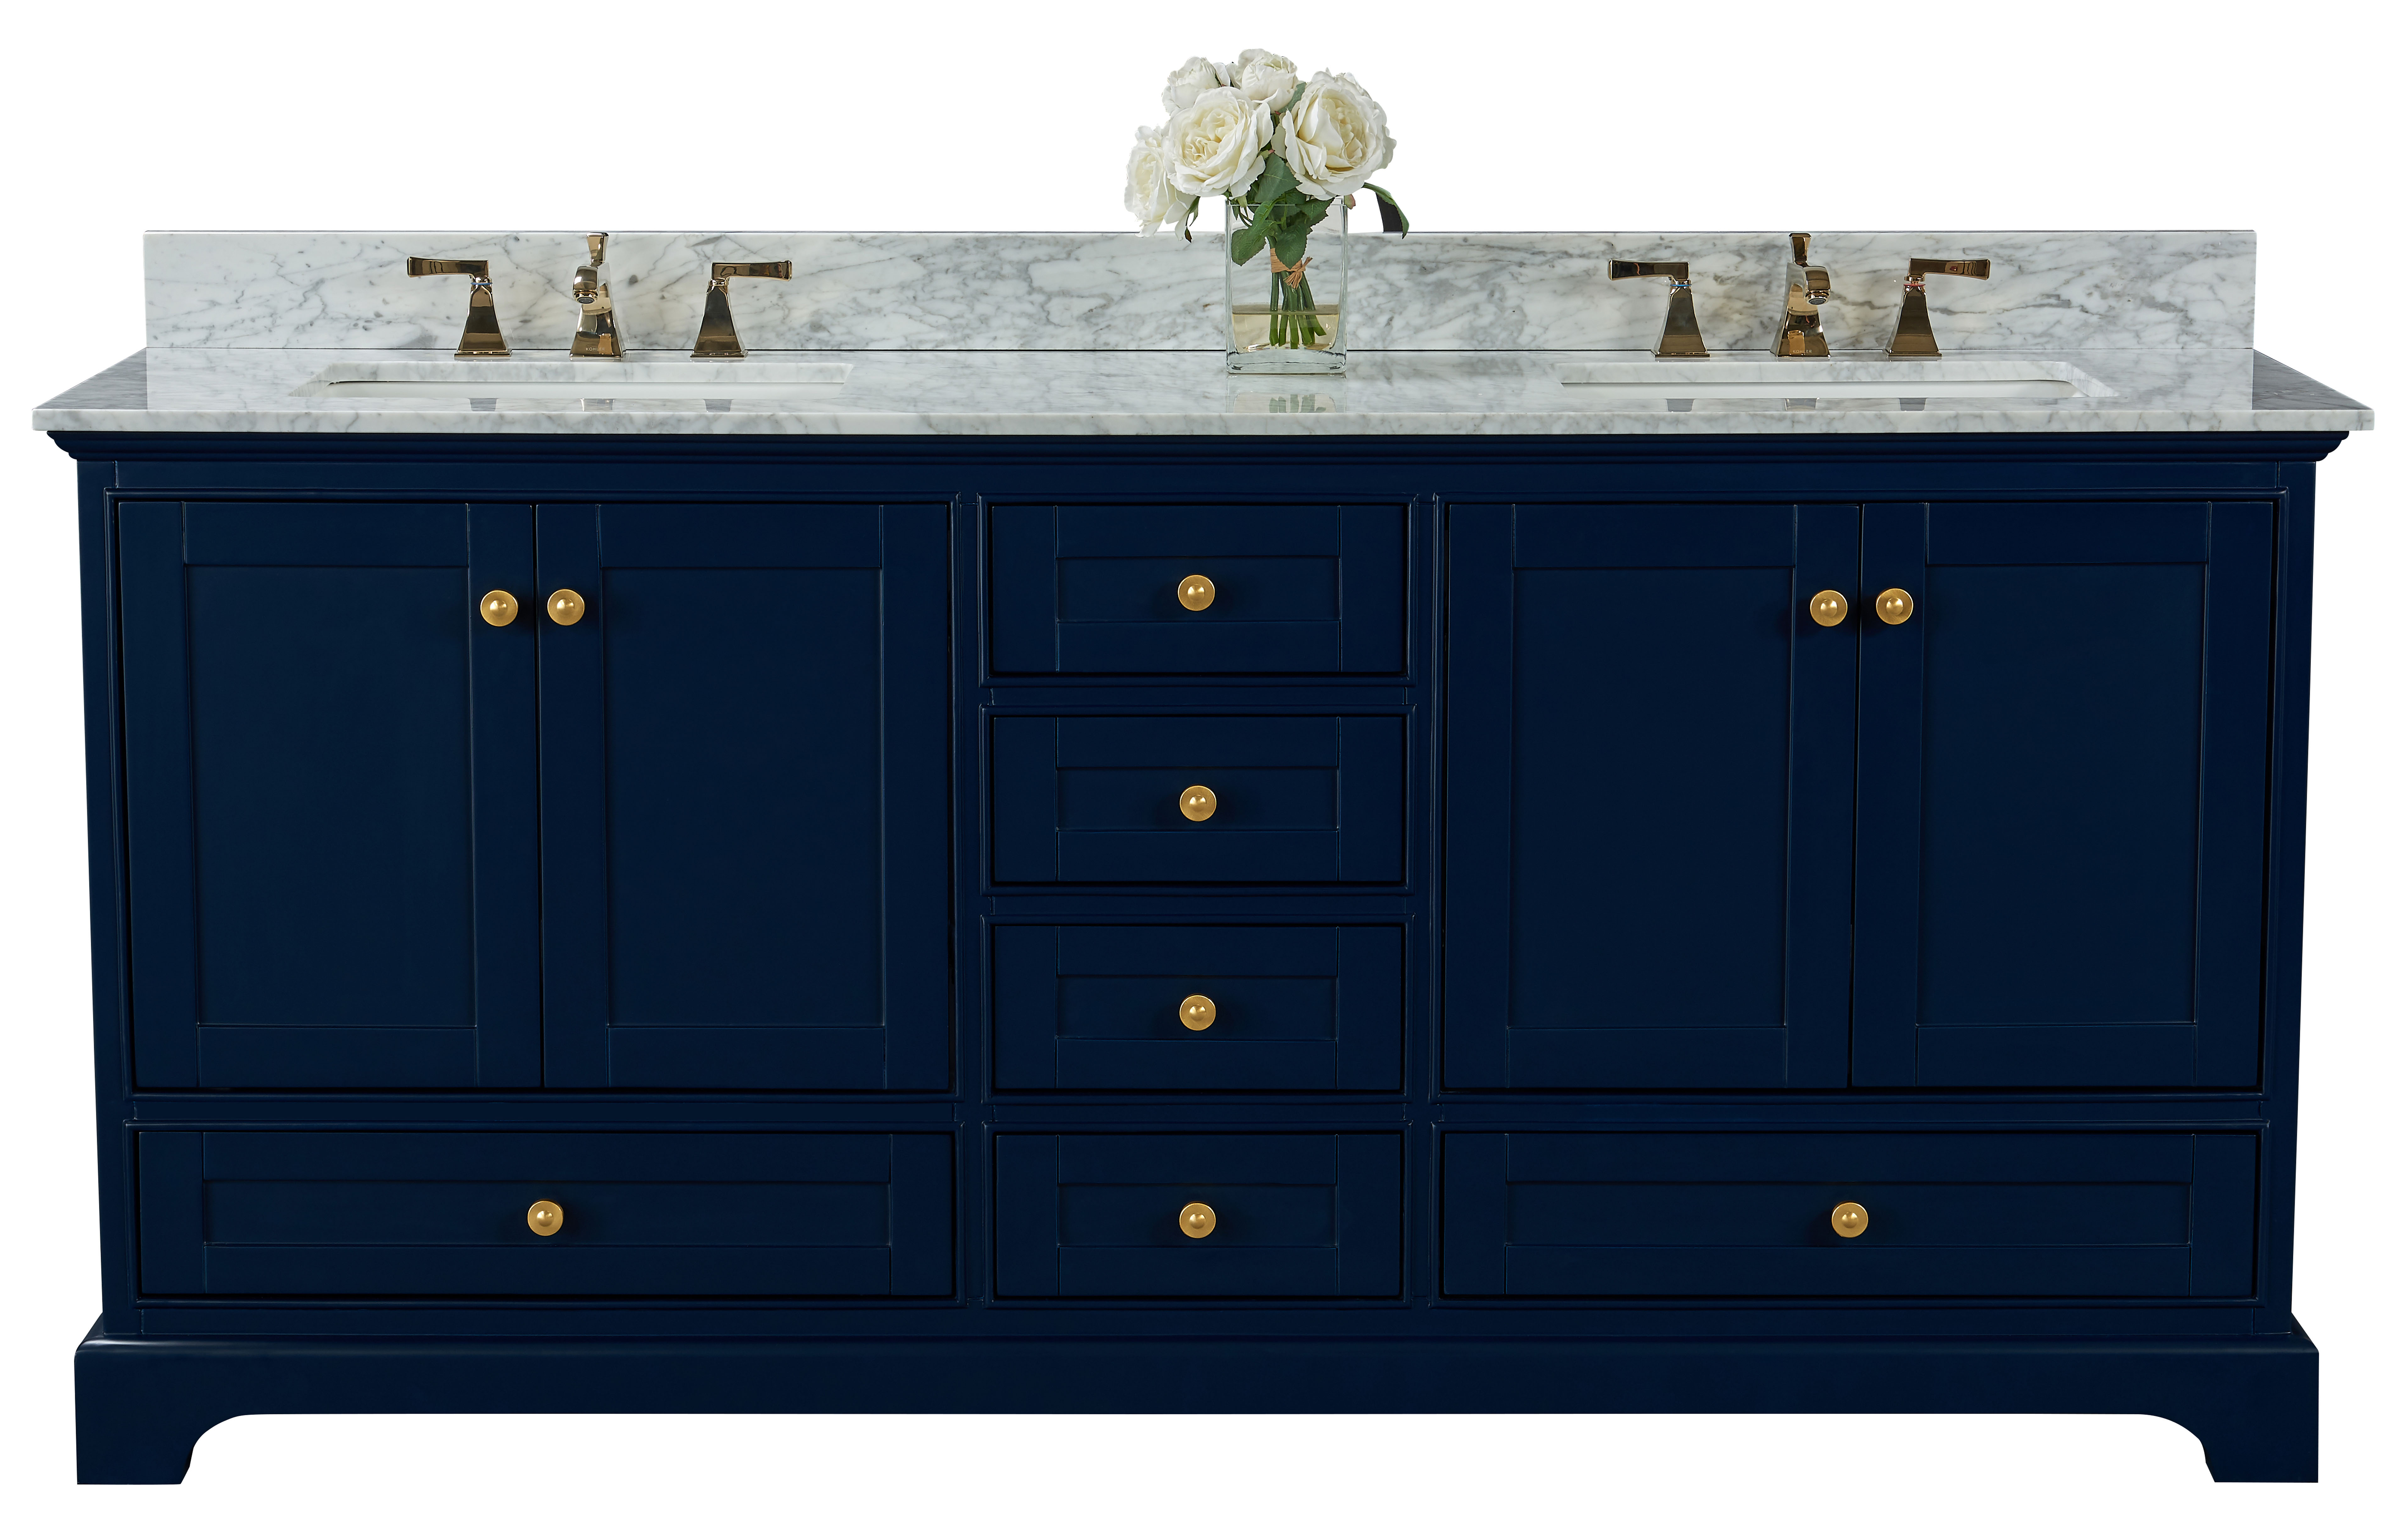 "72"" Bath Vanity Set in Heritage Blue with Italian Carrara White Marble Vanity top and White Undermount Basin with Gold Hardware with Color Options"